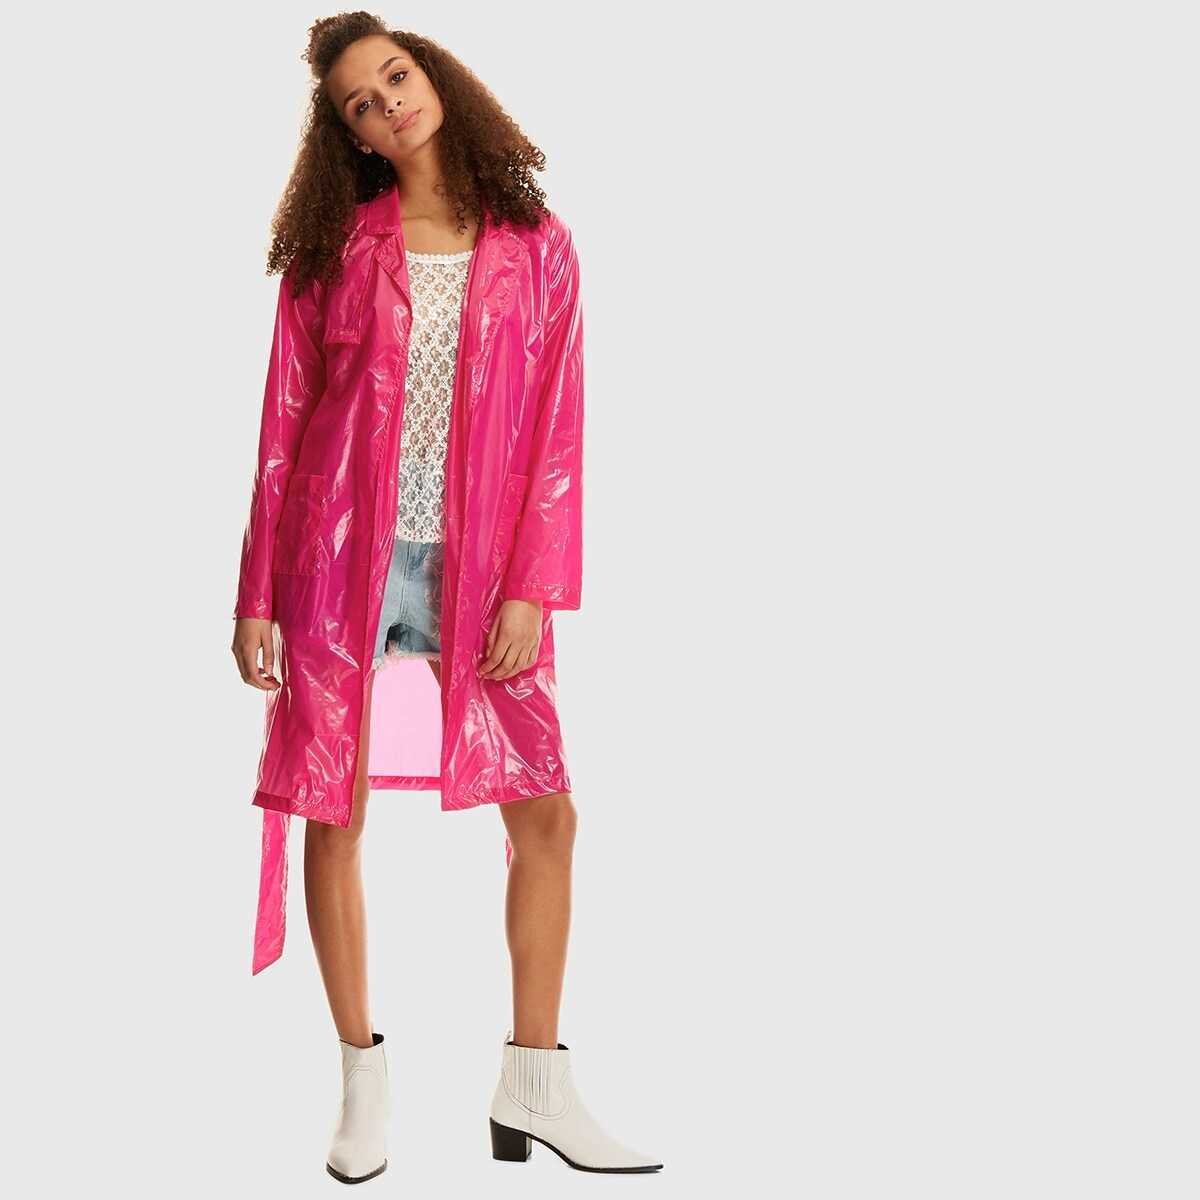 Dual Pocket Open Front Belted Raincoat - Shein - GOOFASH